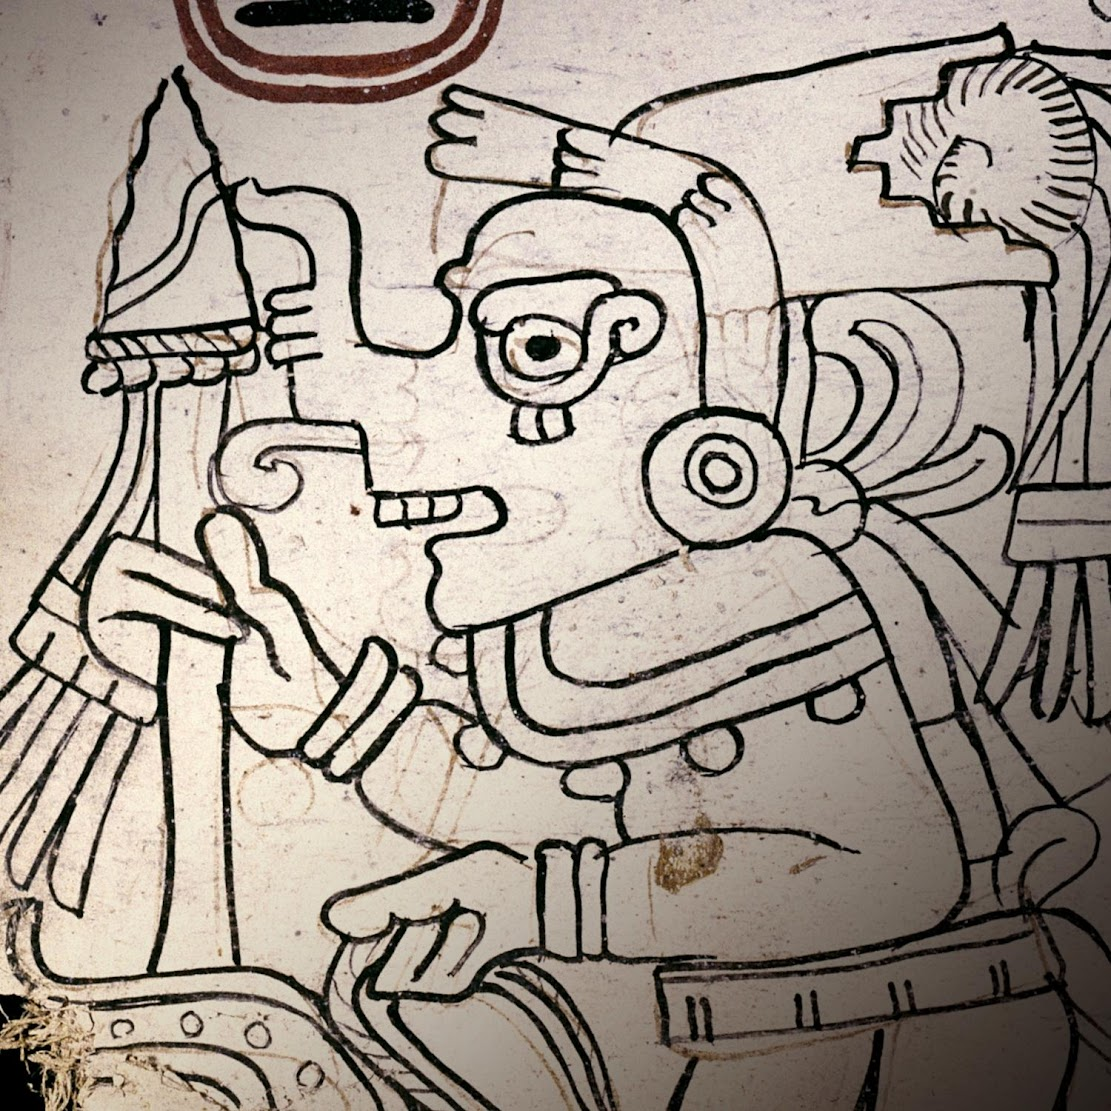 Central America: 13th century Maya codex, long shrouded in controversy, proves genuine